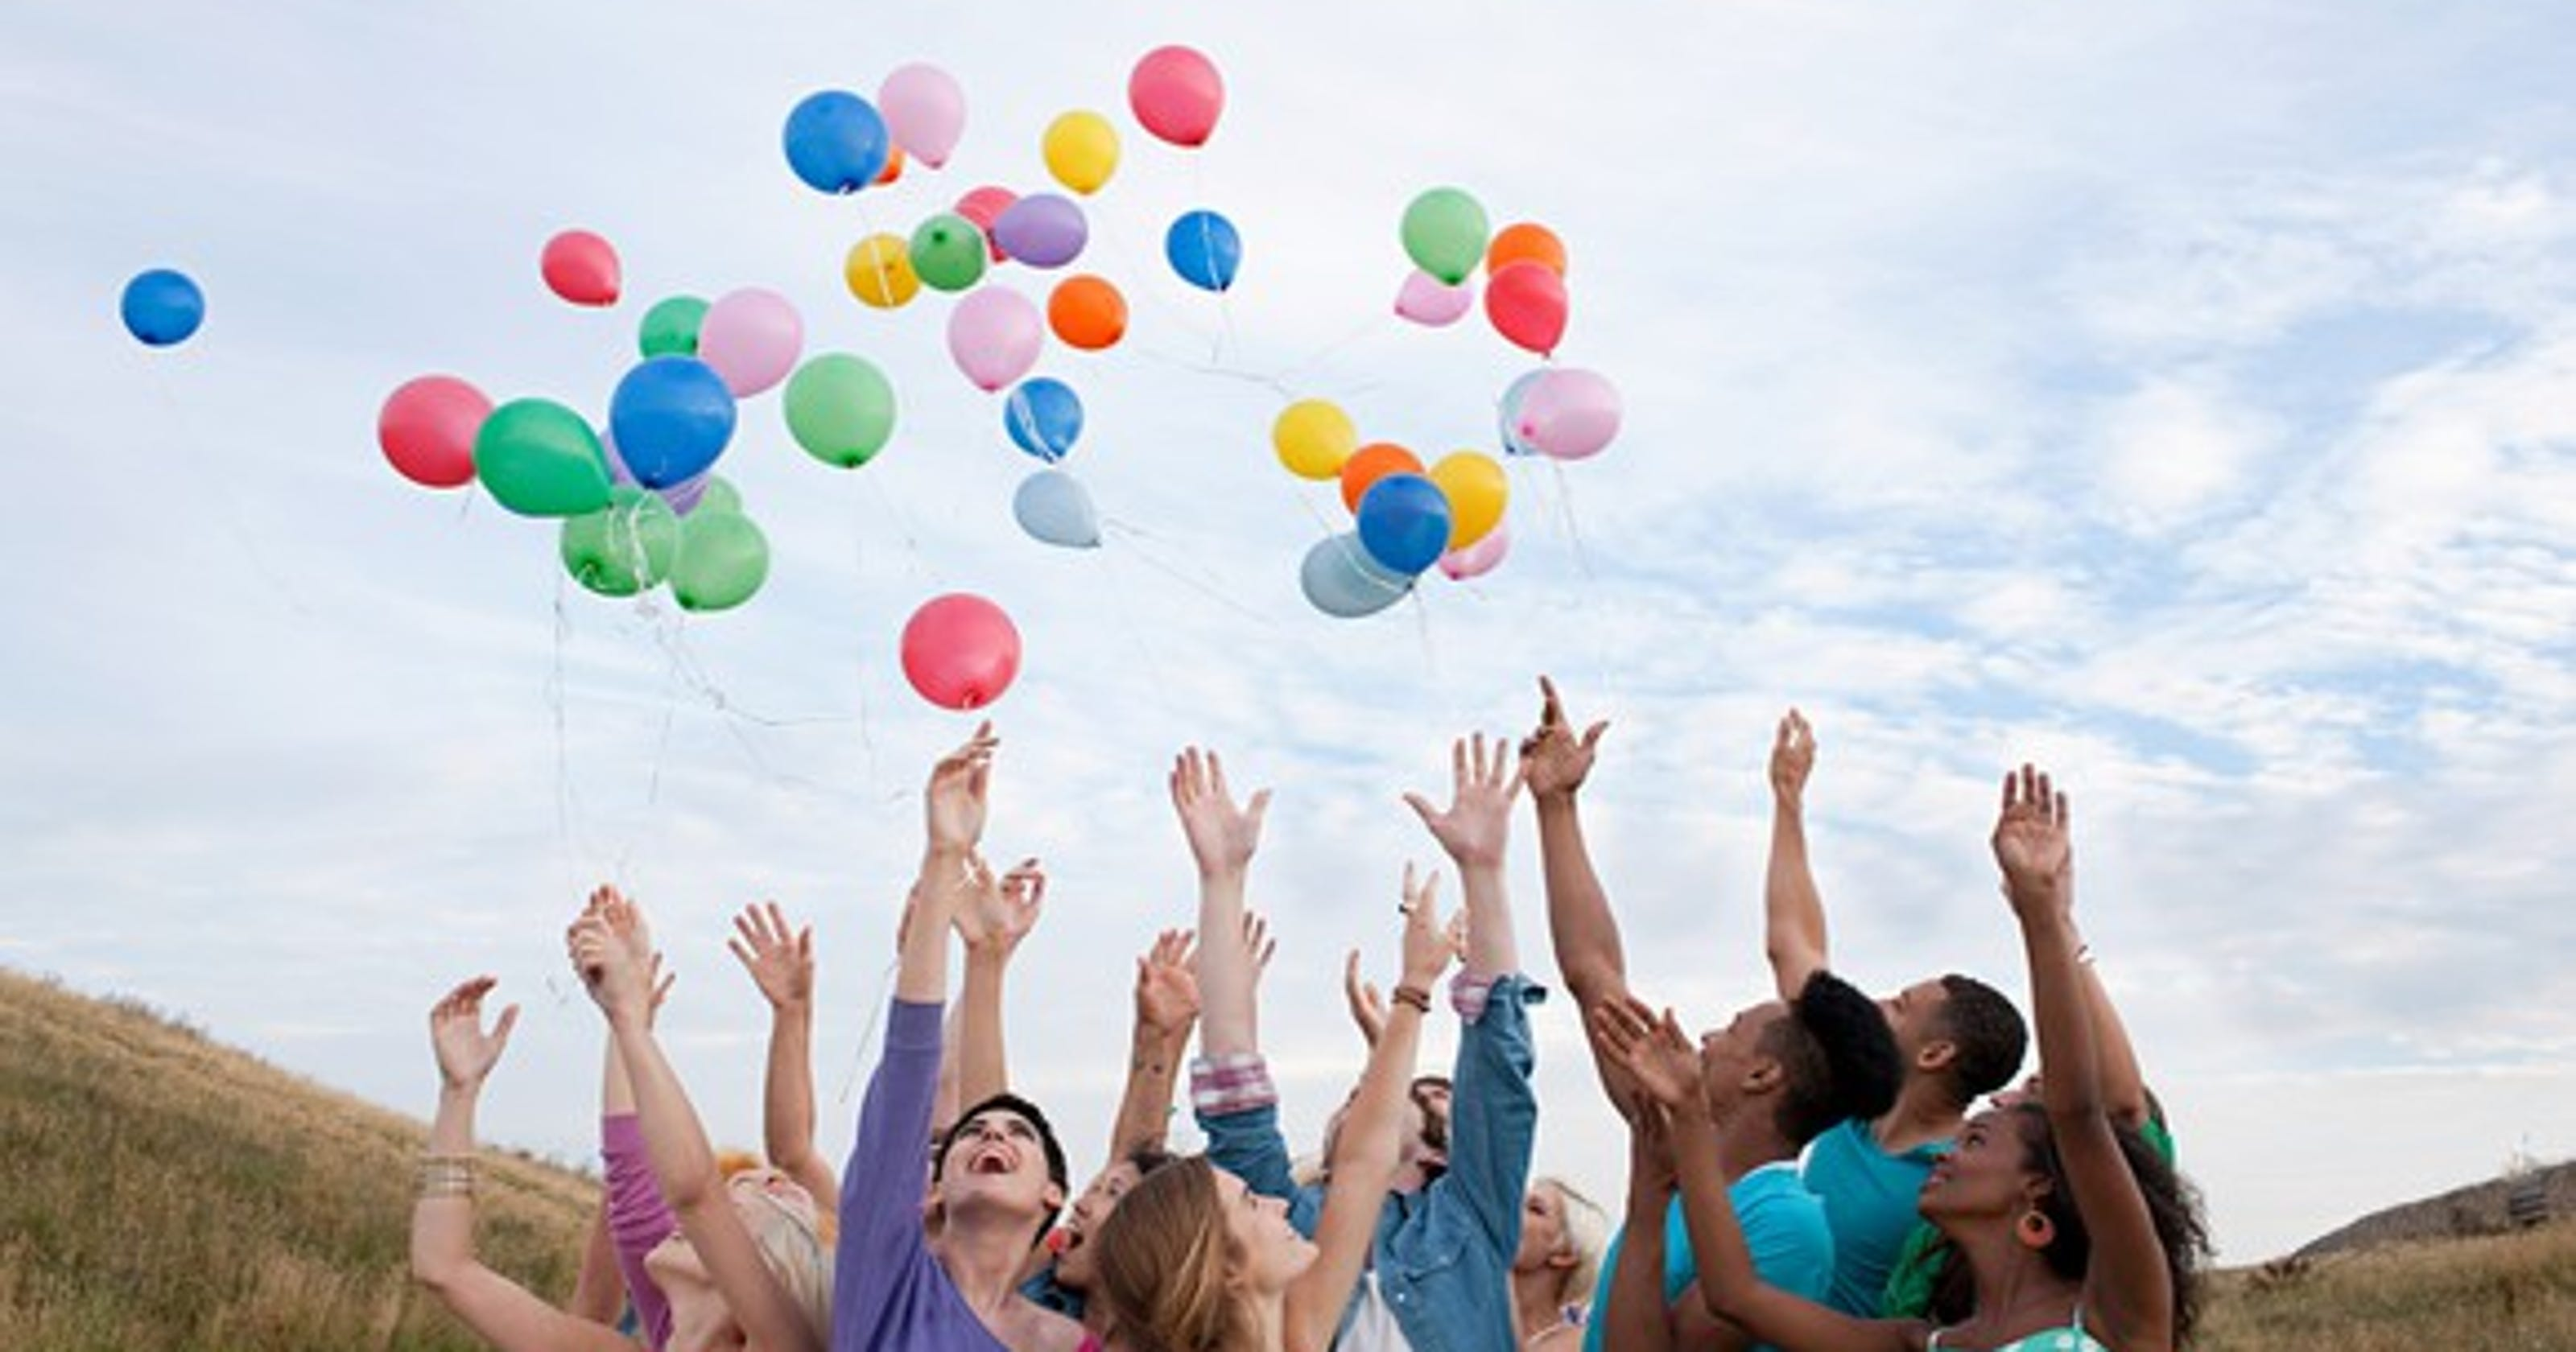 balloon bans after straw bans are balloons going to be next